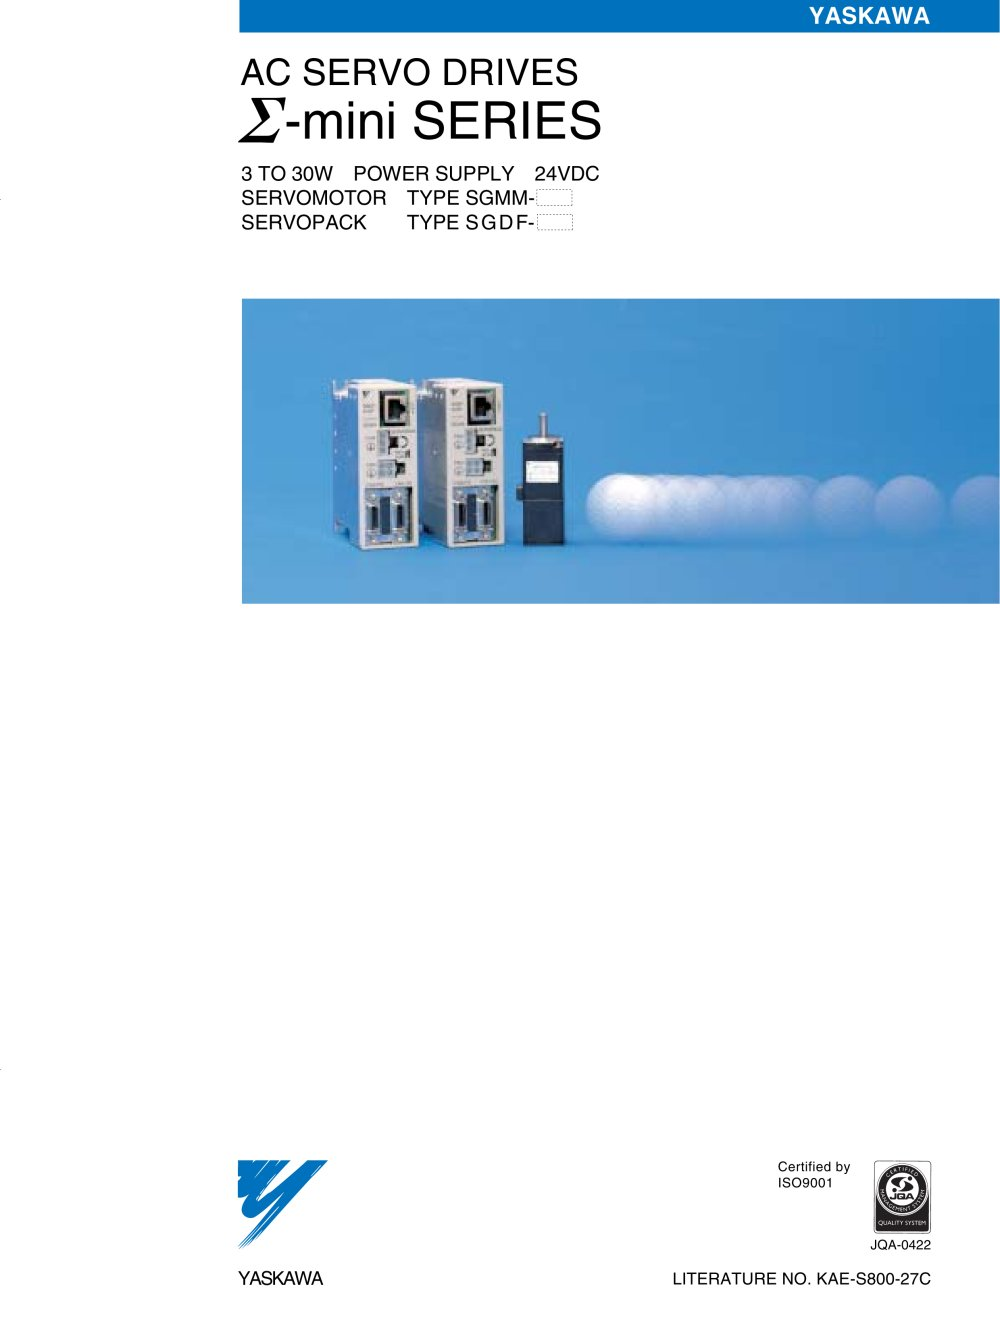 AC SERVO DRIVES ?(Sigma)-mini SERIES - YASKAWA - PDF Catalogue ...